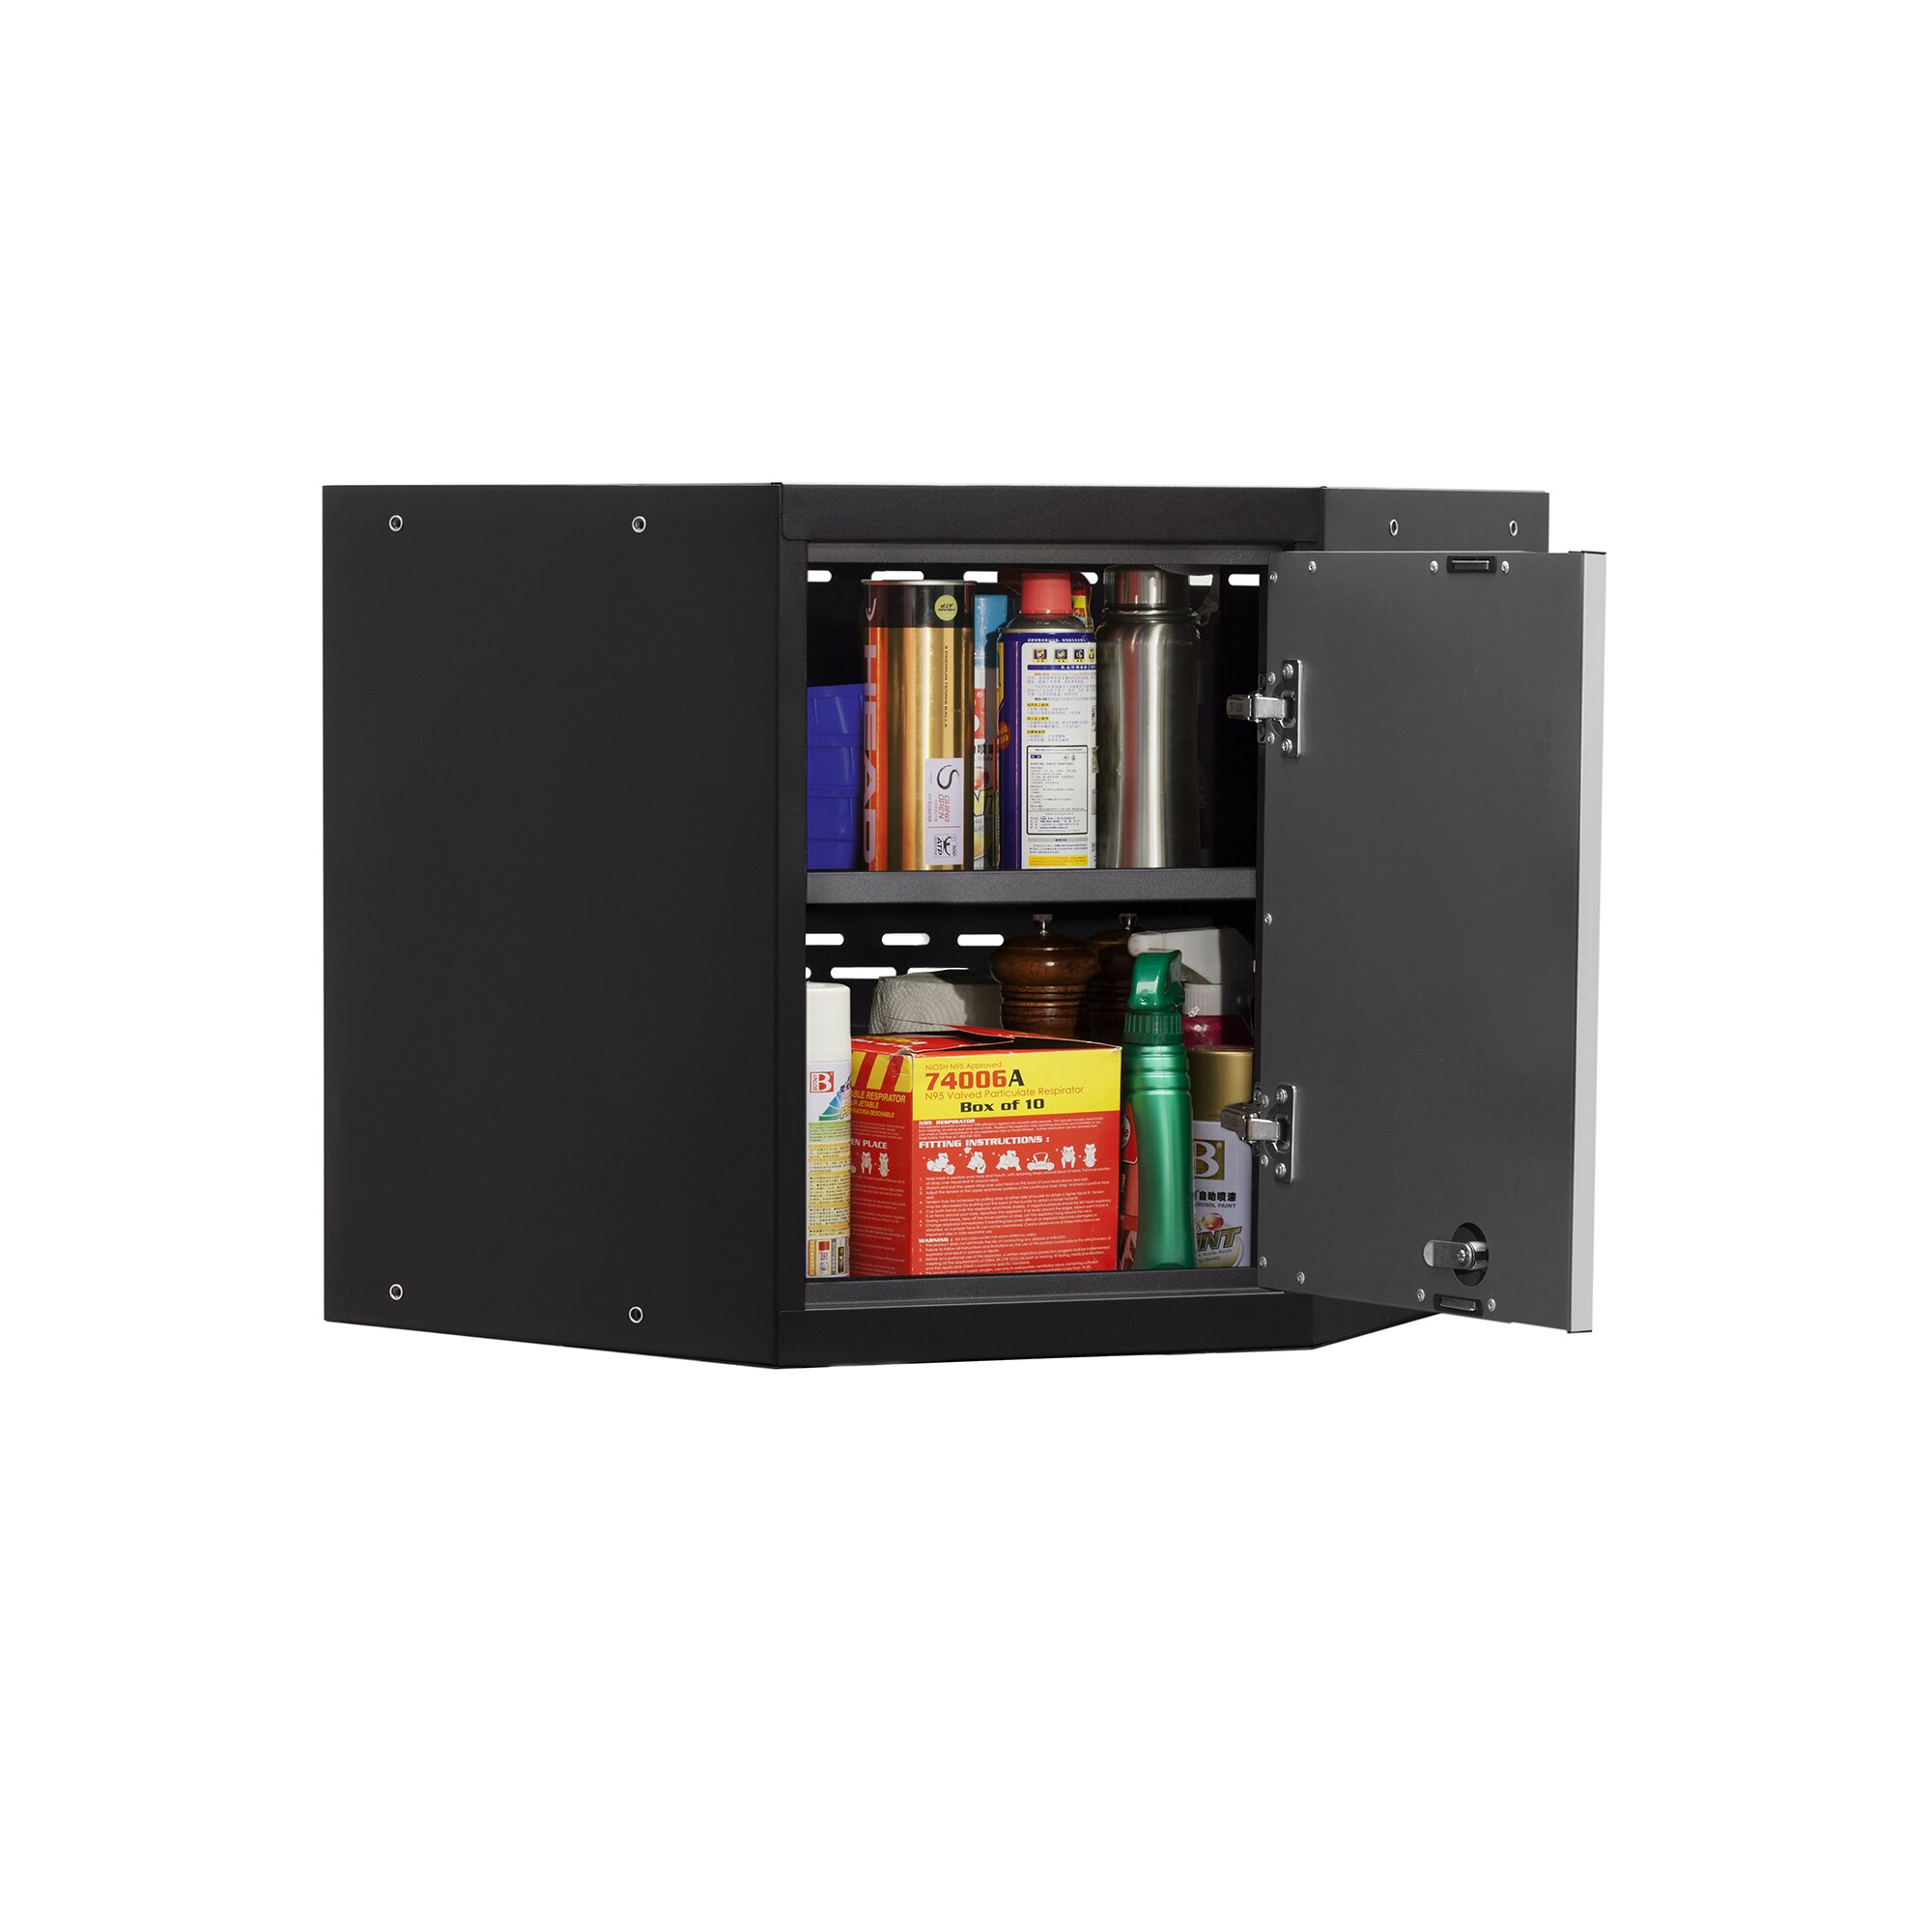 Newage Products Pro 3 0 Series Corner Wall Cabinet